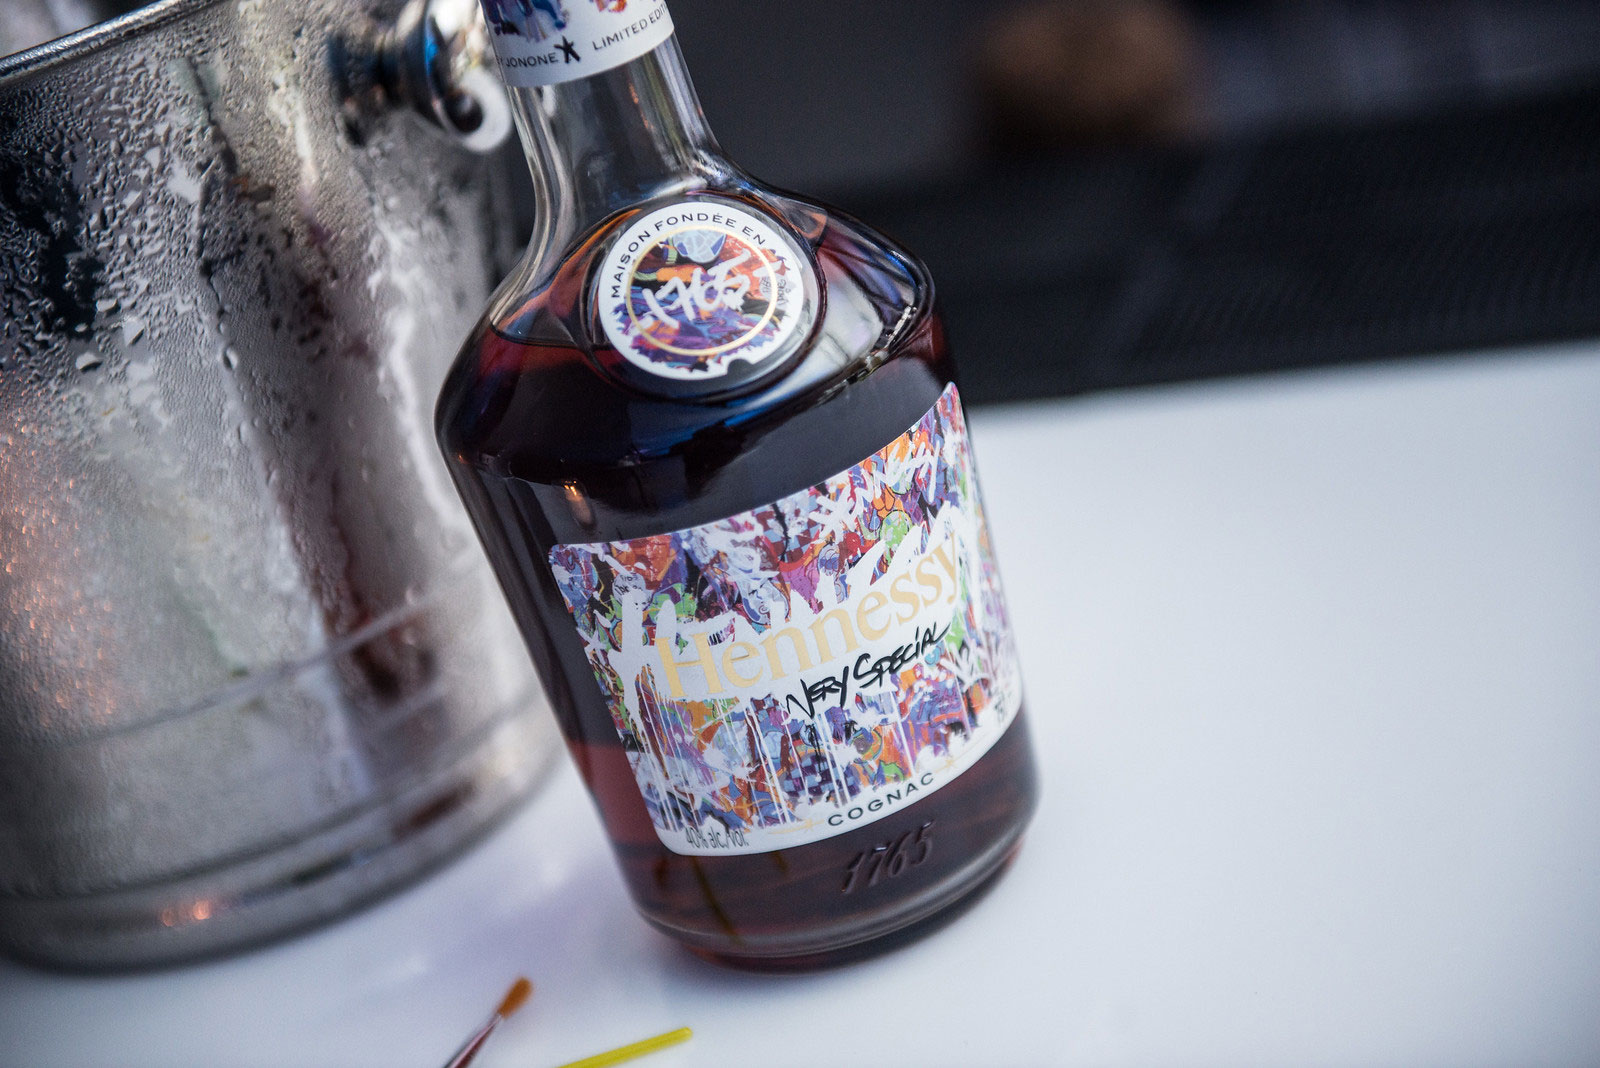 Hennessey Very Special release. Label designed by the graffiti artist JohnOne.